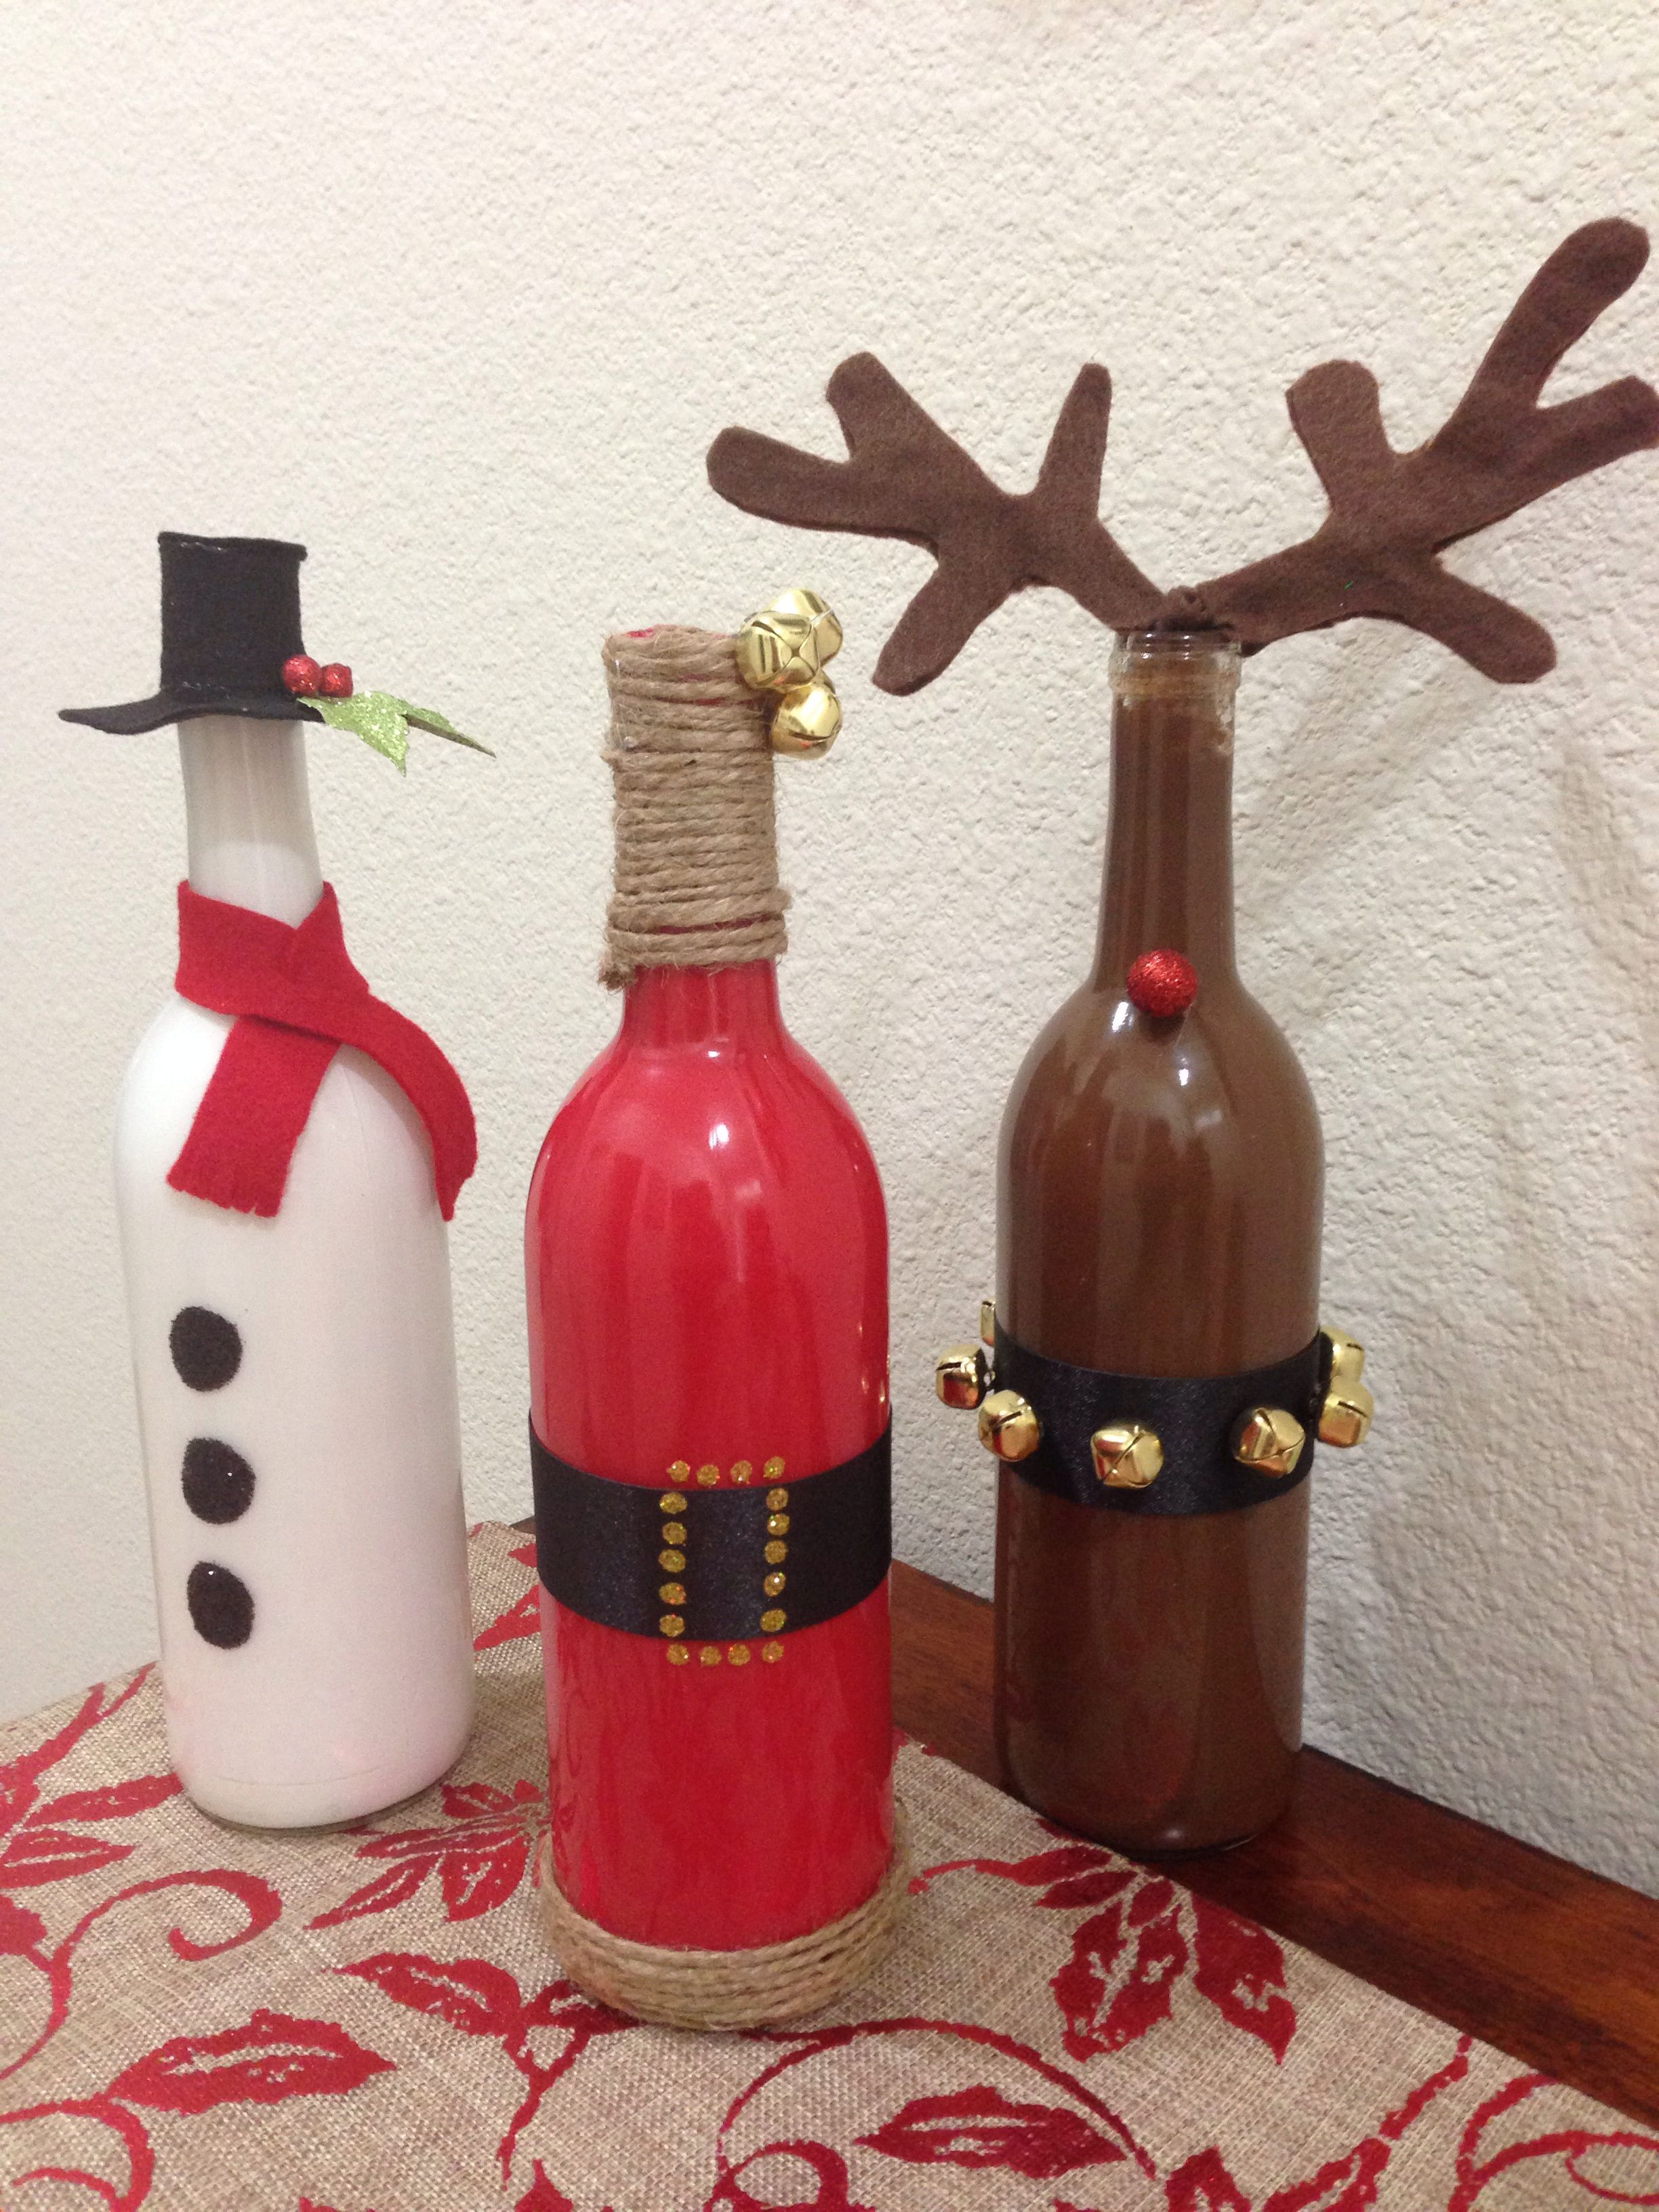 Christmas Crafts From Old Wine Bottles Decoratedwinebottles Homemade Christmas Decorations Christmas Crafts Christmas Decorations